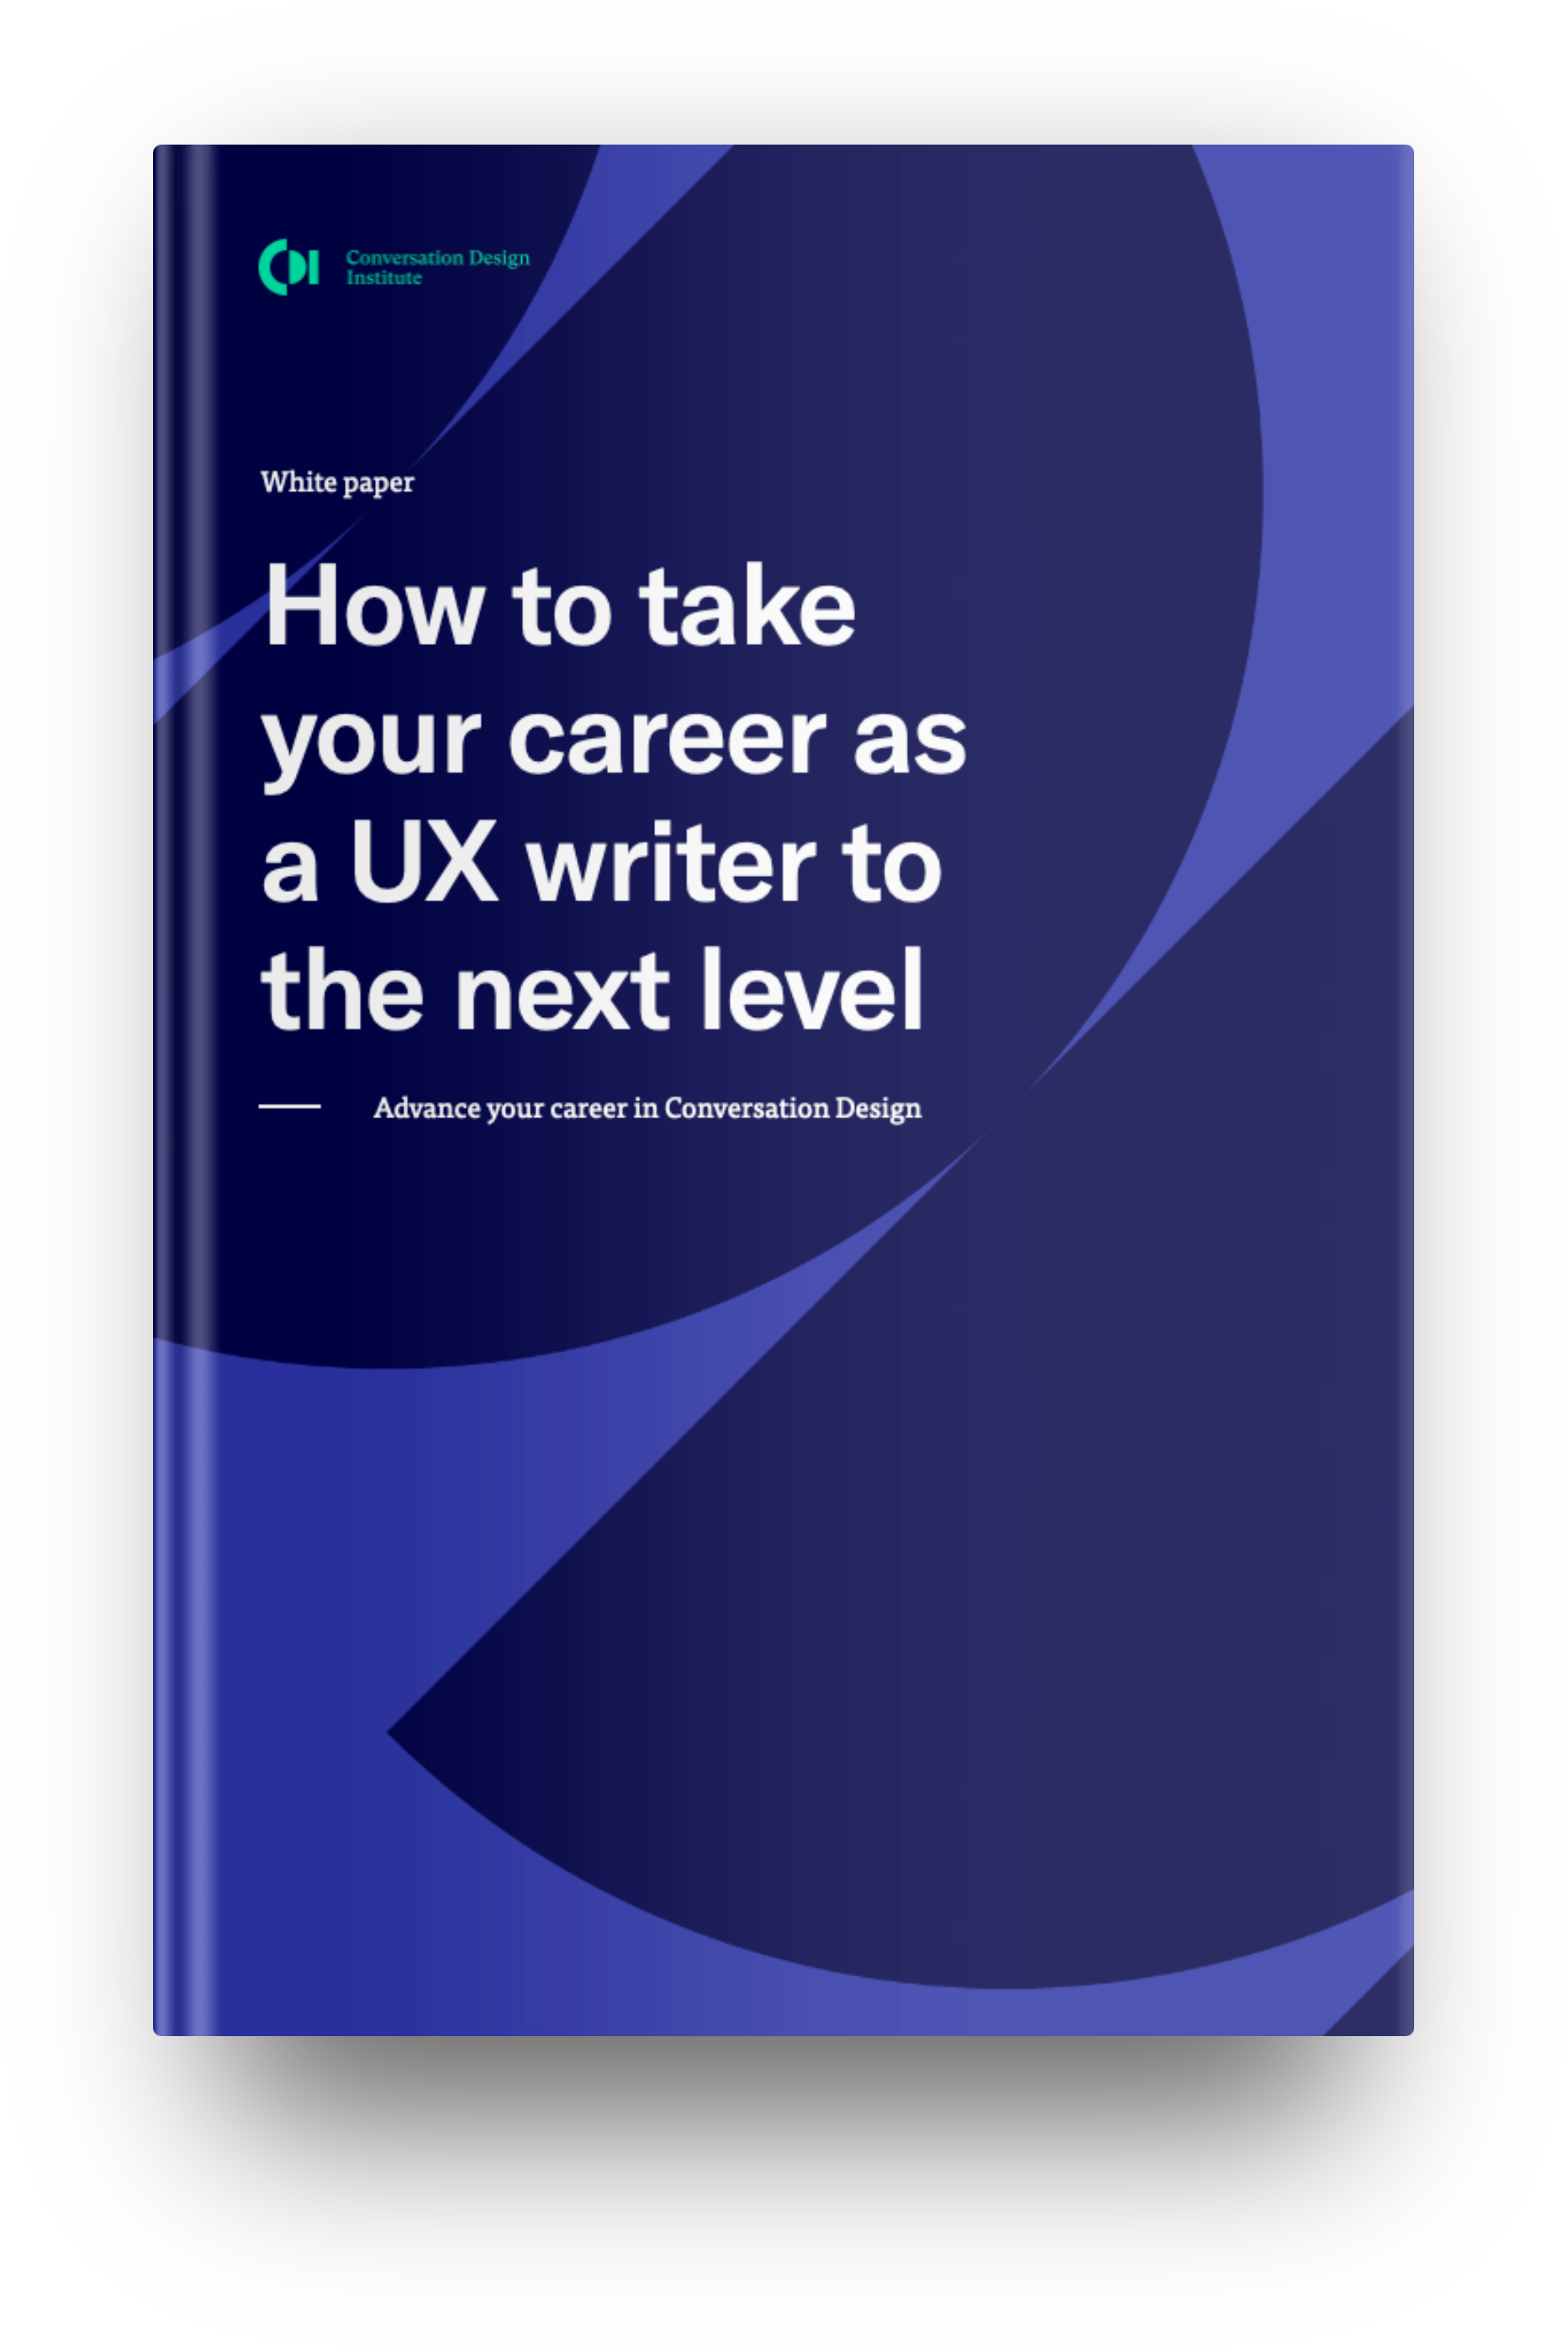 WP - how take your career to next level